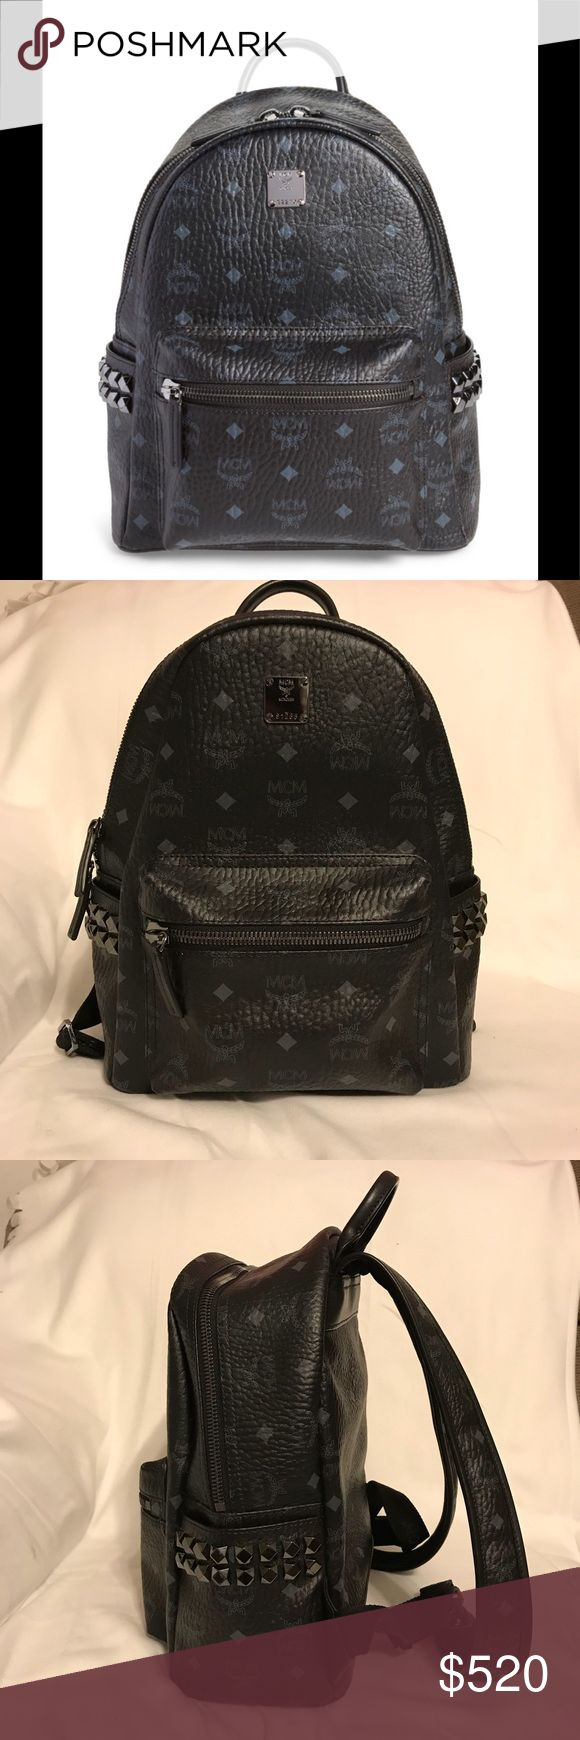 MCM small backpack Mint condition. MCM start stud side backpack. Use a handful of times. Perfect for every day or a day out at a theme park. Price negotiable. Taking offer thru offer button. No trades. MCM Bags Backpacks